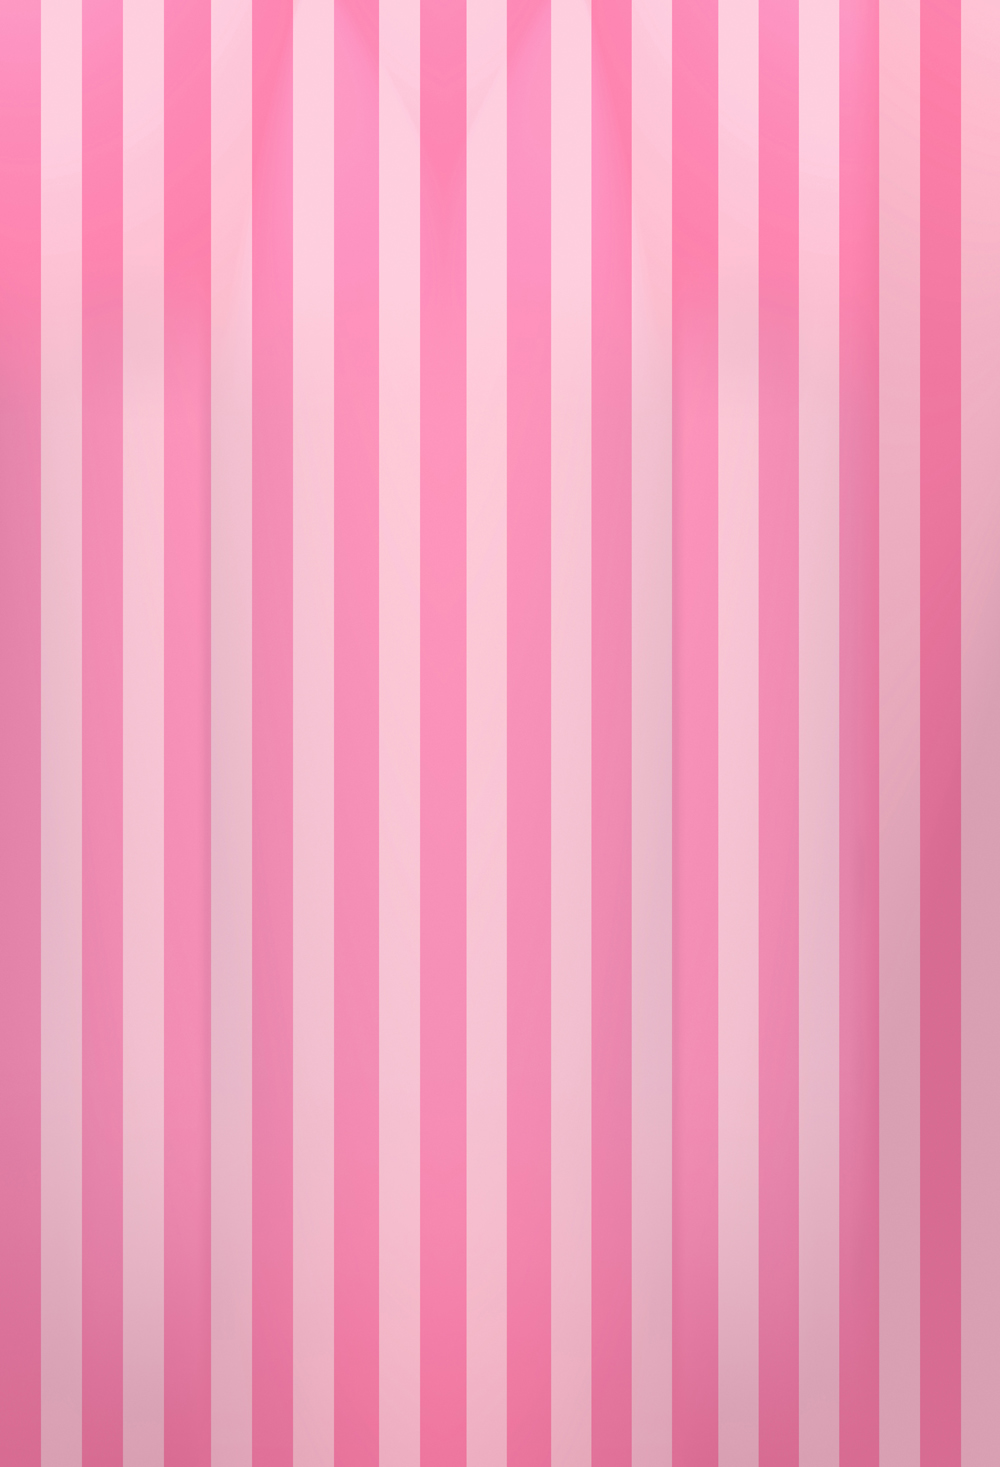 Photography Backdrops pink stripes birthday backdrop Dessert Table backdrop baby shower photo booth props background XT-6584 allenjoy photography backdrops pink curtains stripes birthday background customize photo booth for a photo shoot vinyl backdrops